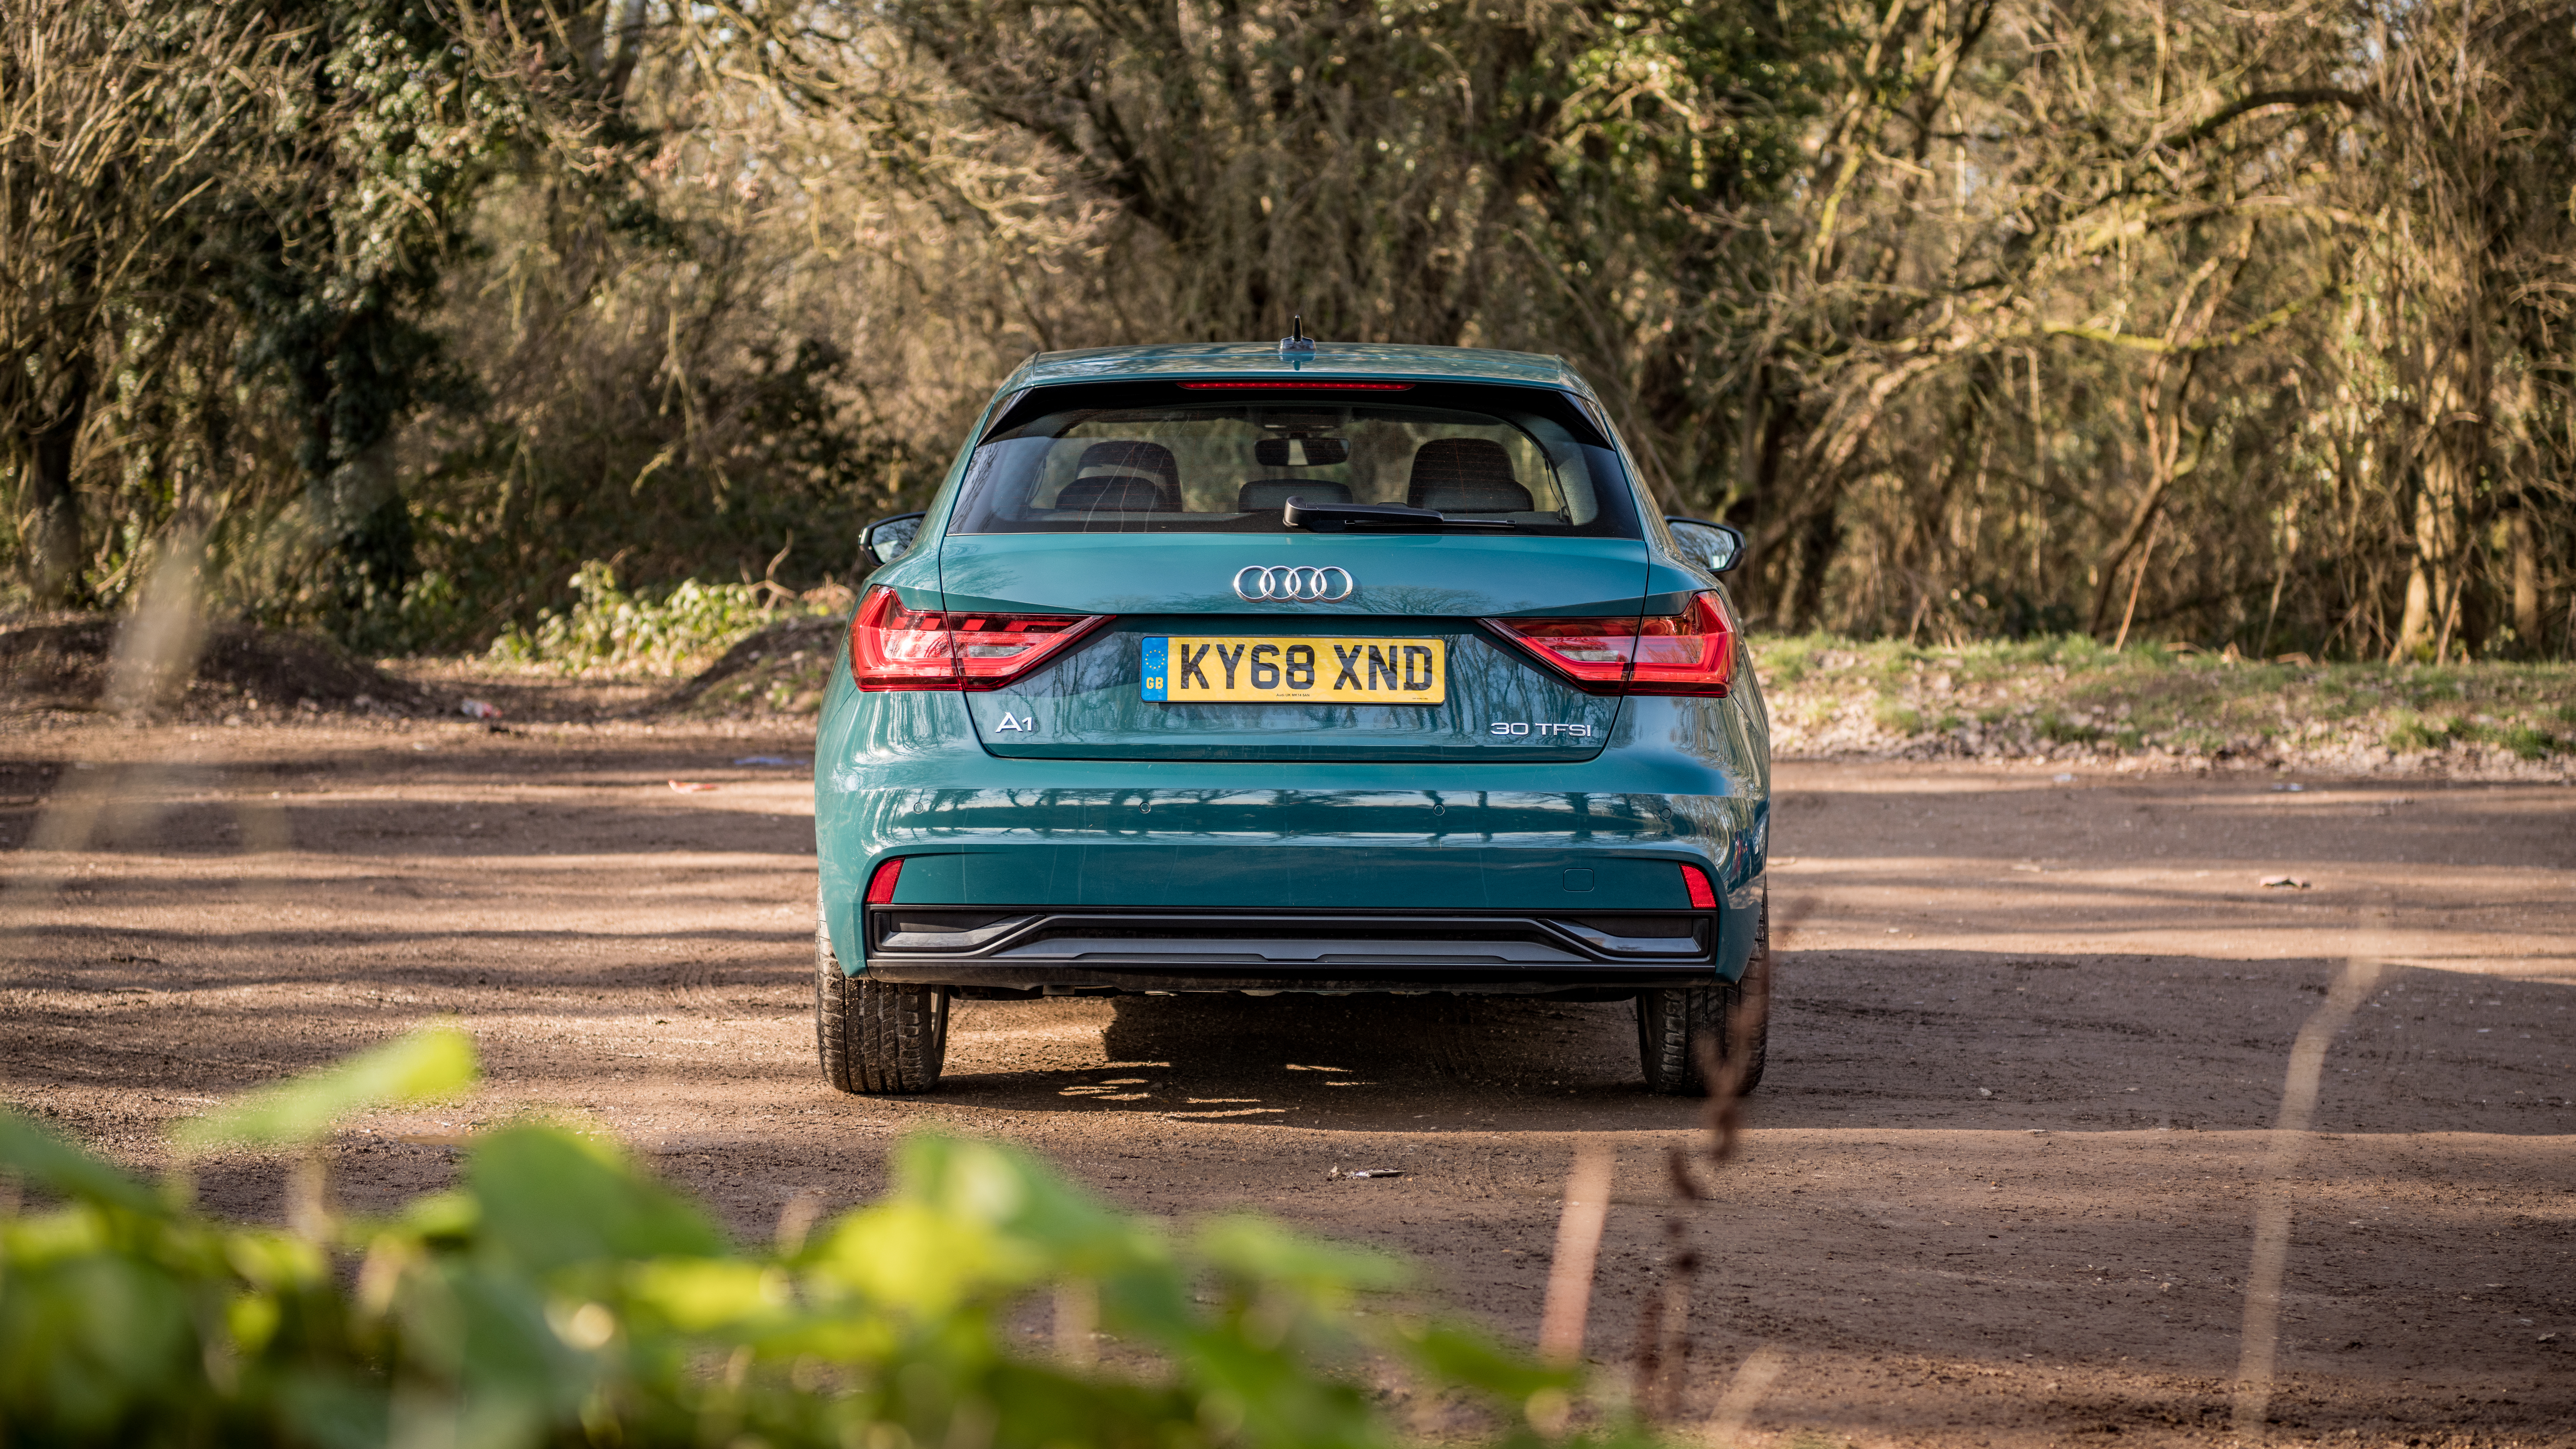 Audi A1 Sport Used Cars For Sale On Auto Trader Uk